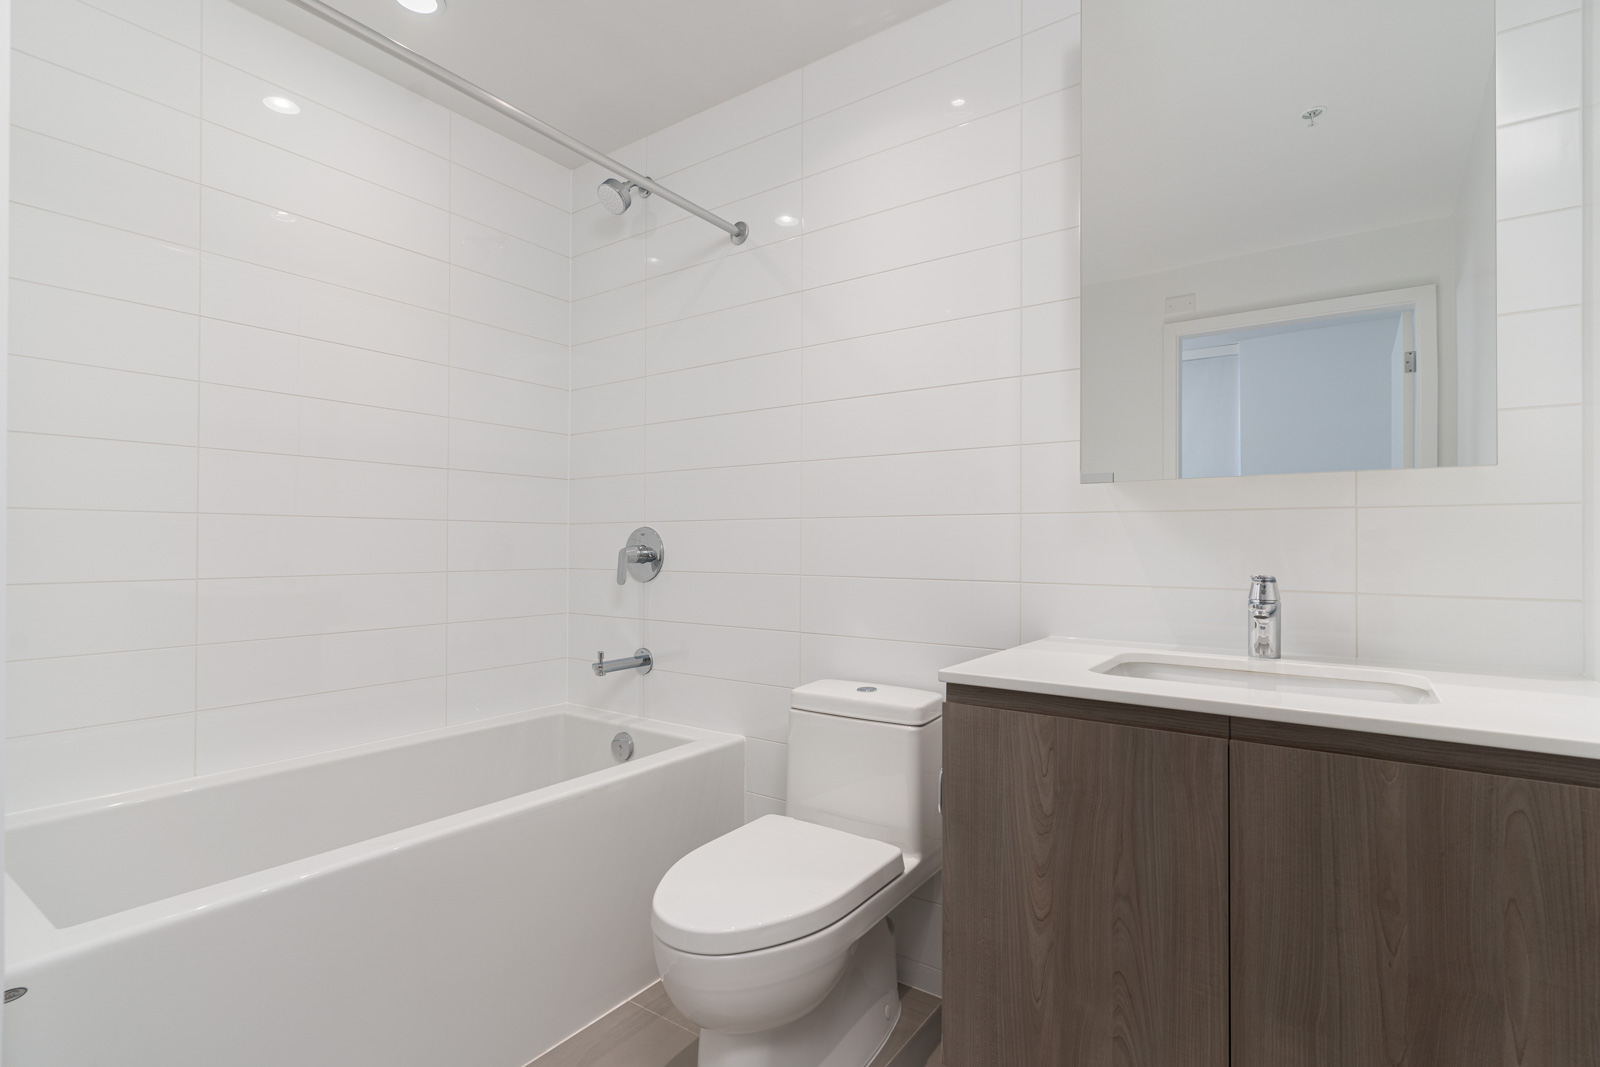 Bathroom with white walls and him/her sink